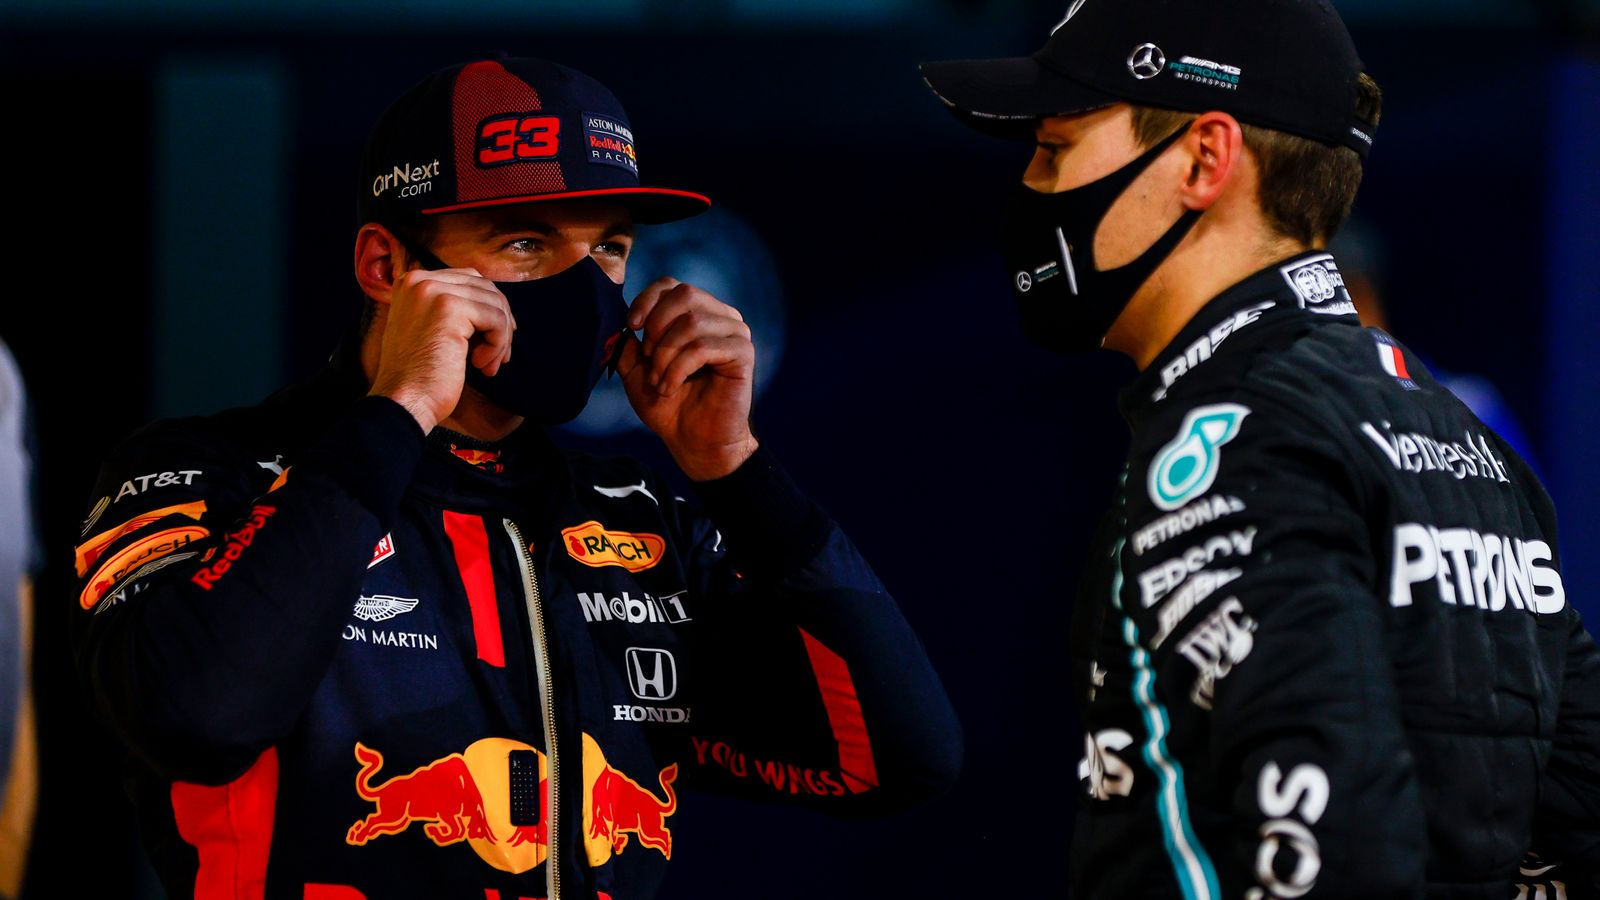 Abu Dhabi GP: When is the race live on Sky Sports F1 and what's still to play for?